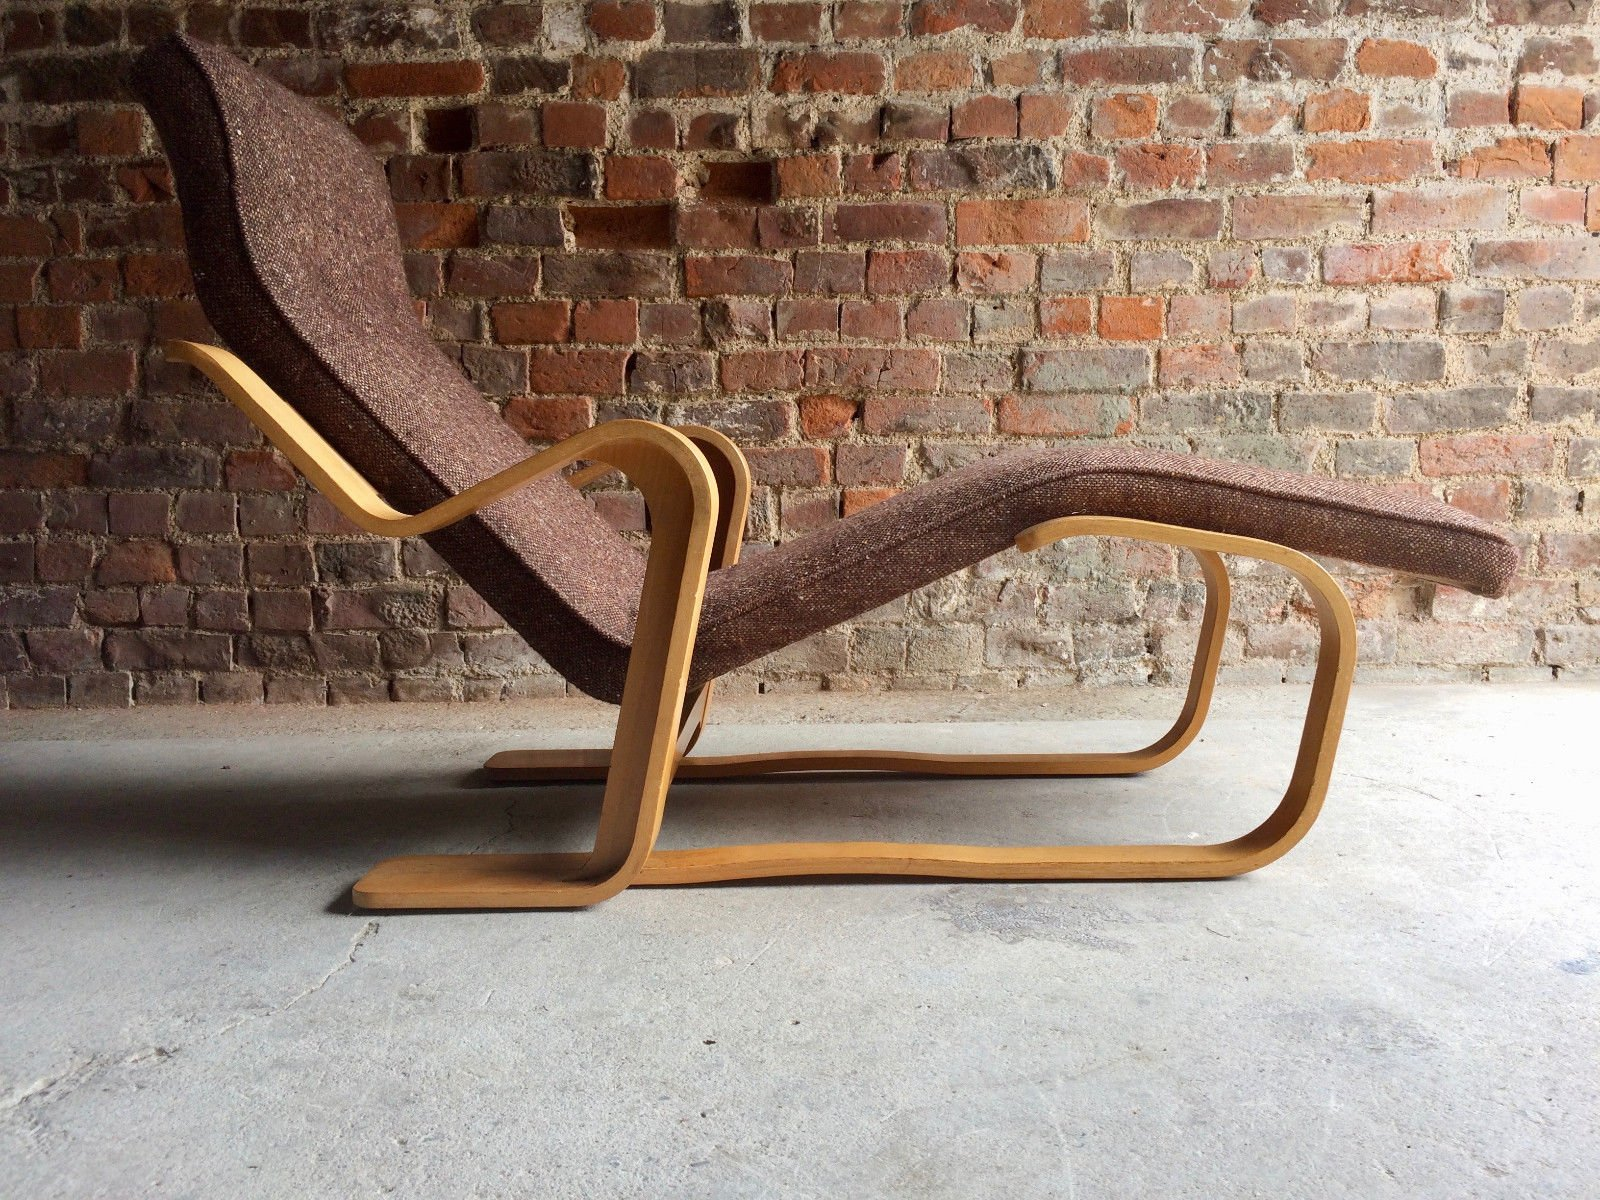 Bauhaus Chaise Lounge By Marcel Breuer For Knoll 1970s